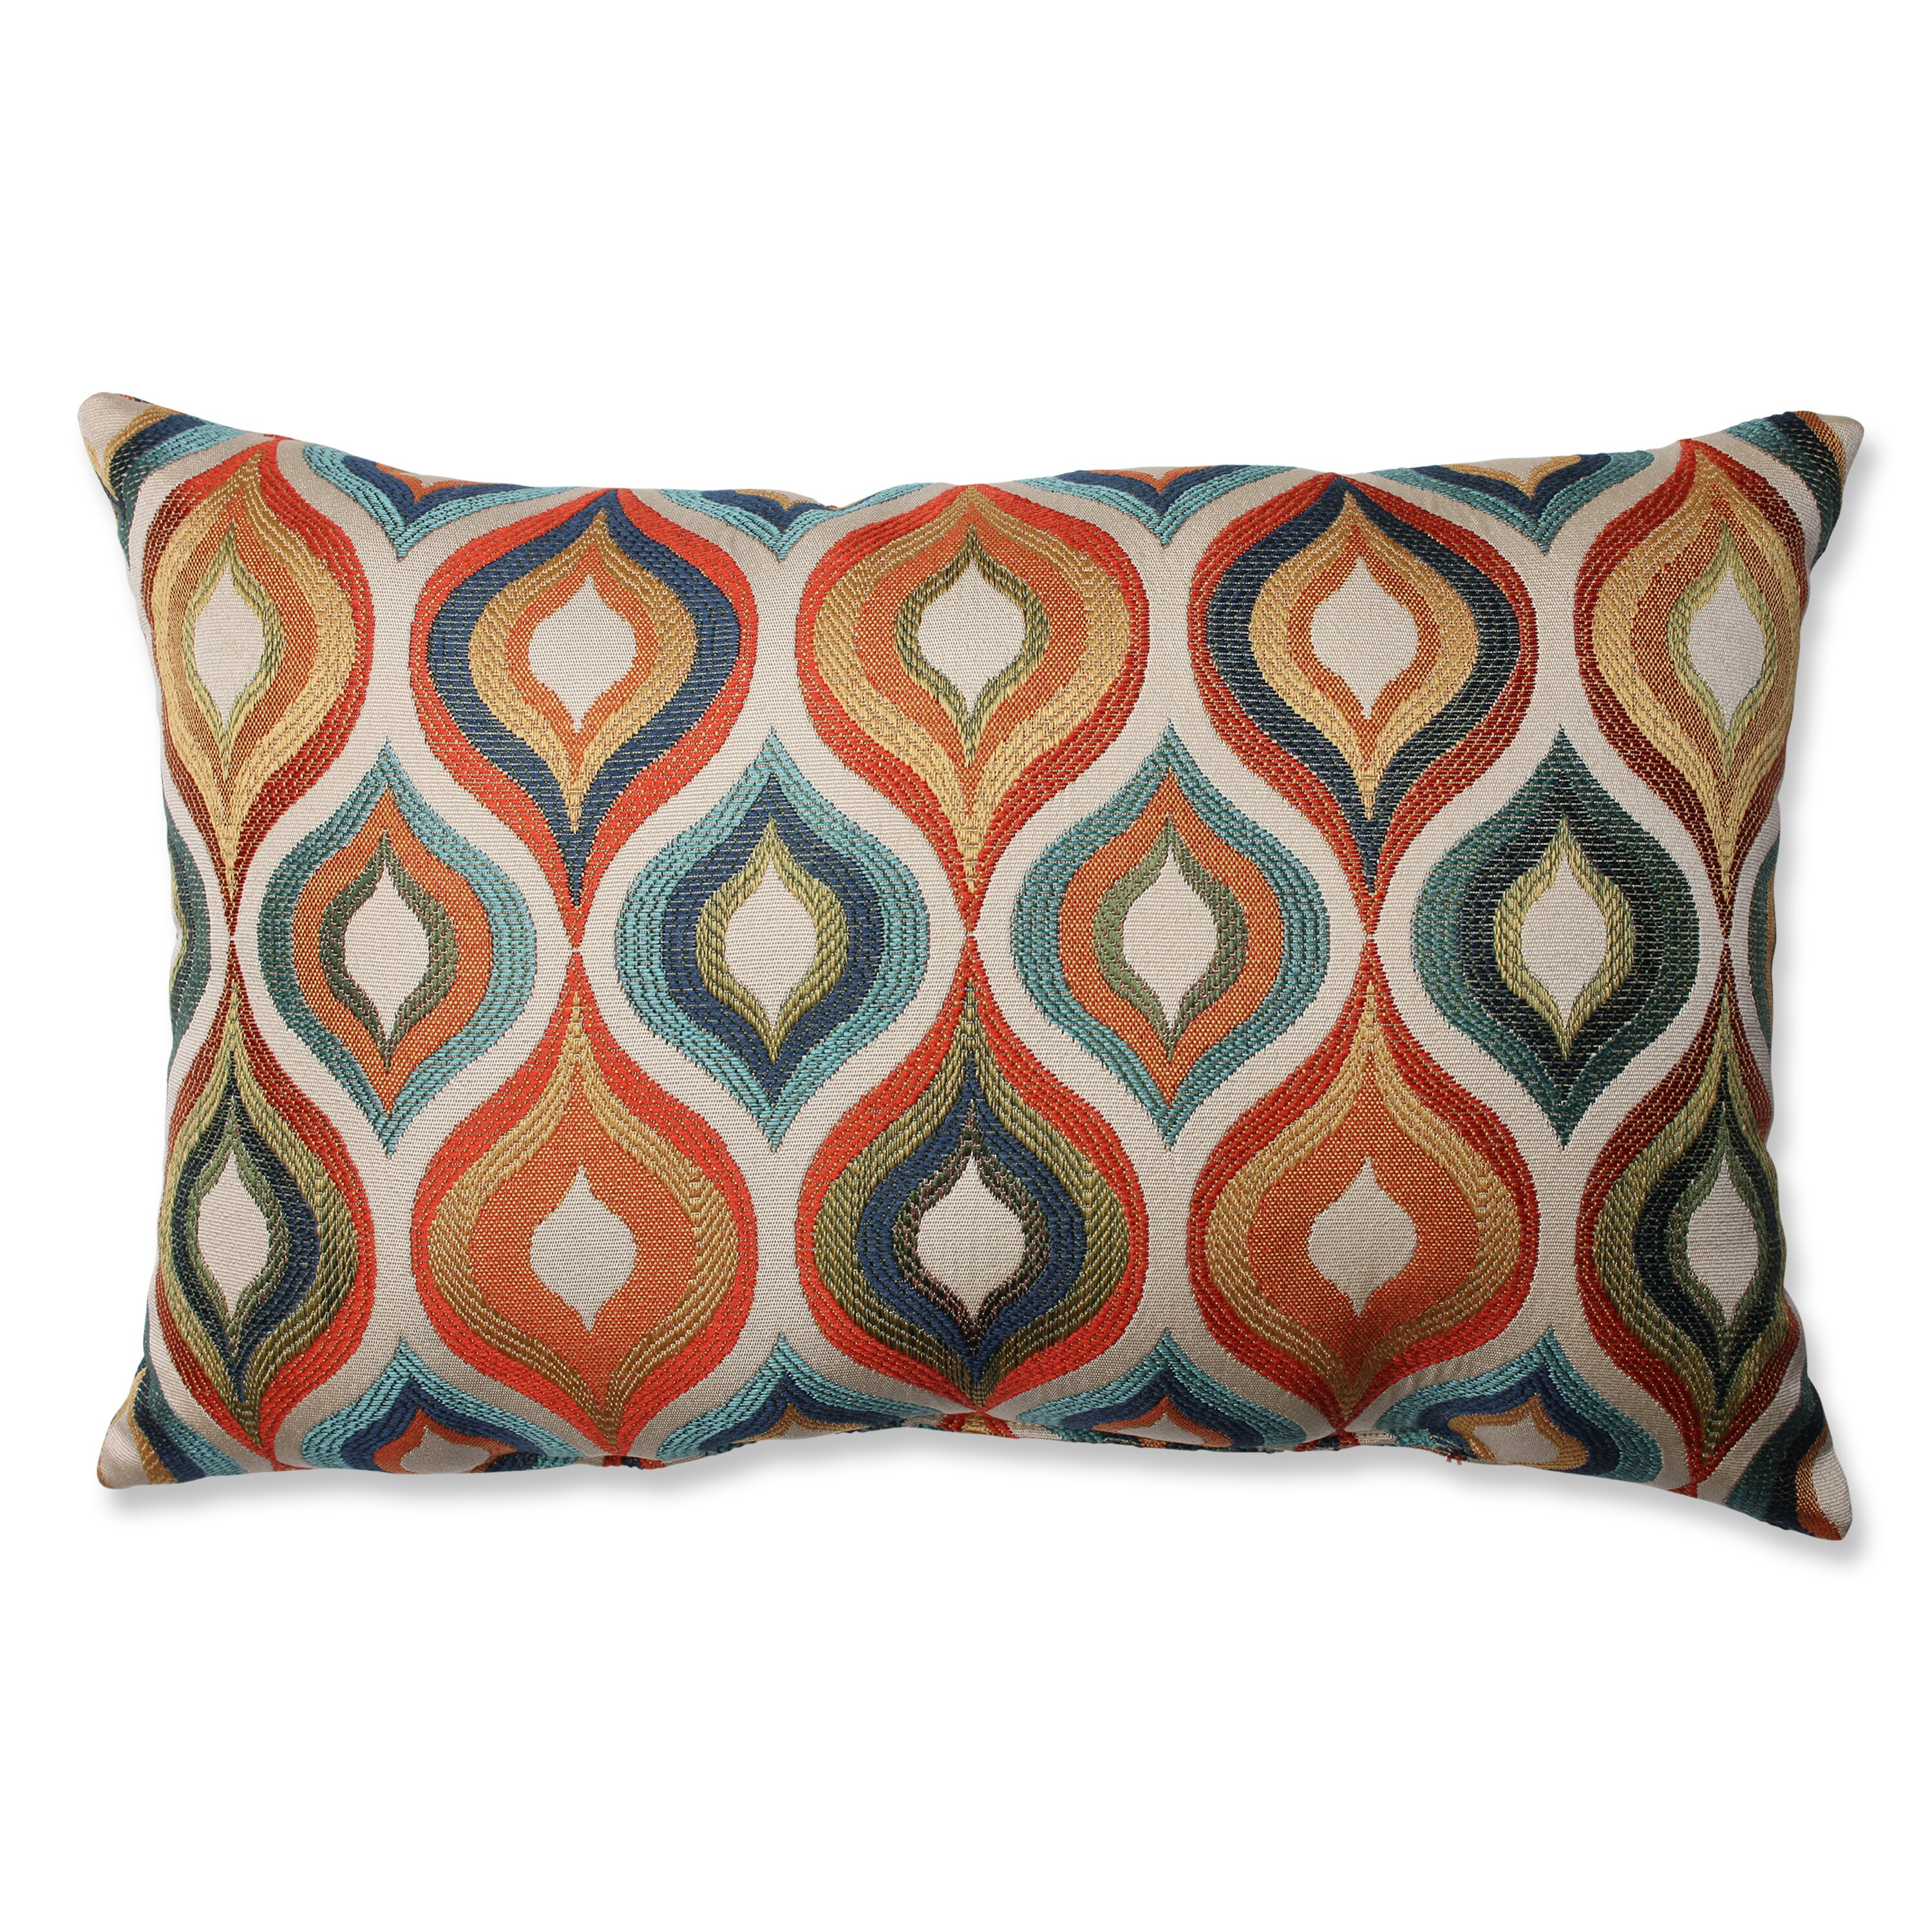 Brown and teal throw pillows - Varick Gallery Reg Woodlynne Jewel Throw Pillow